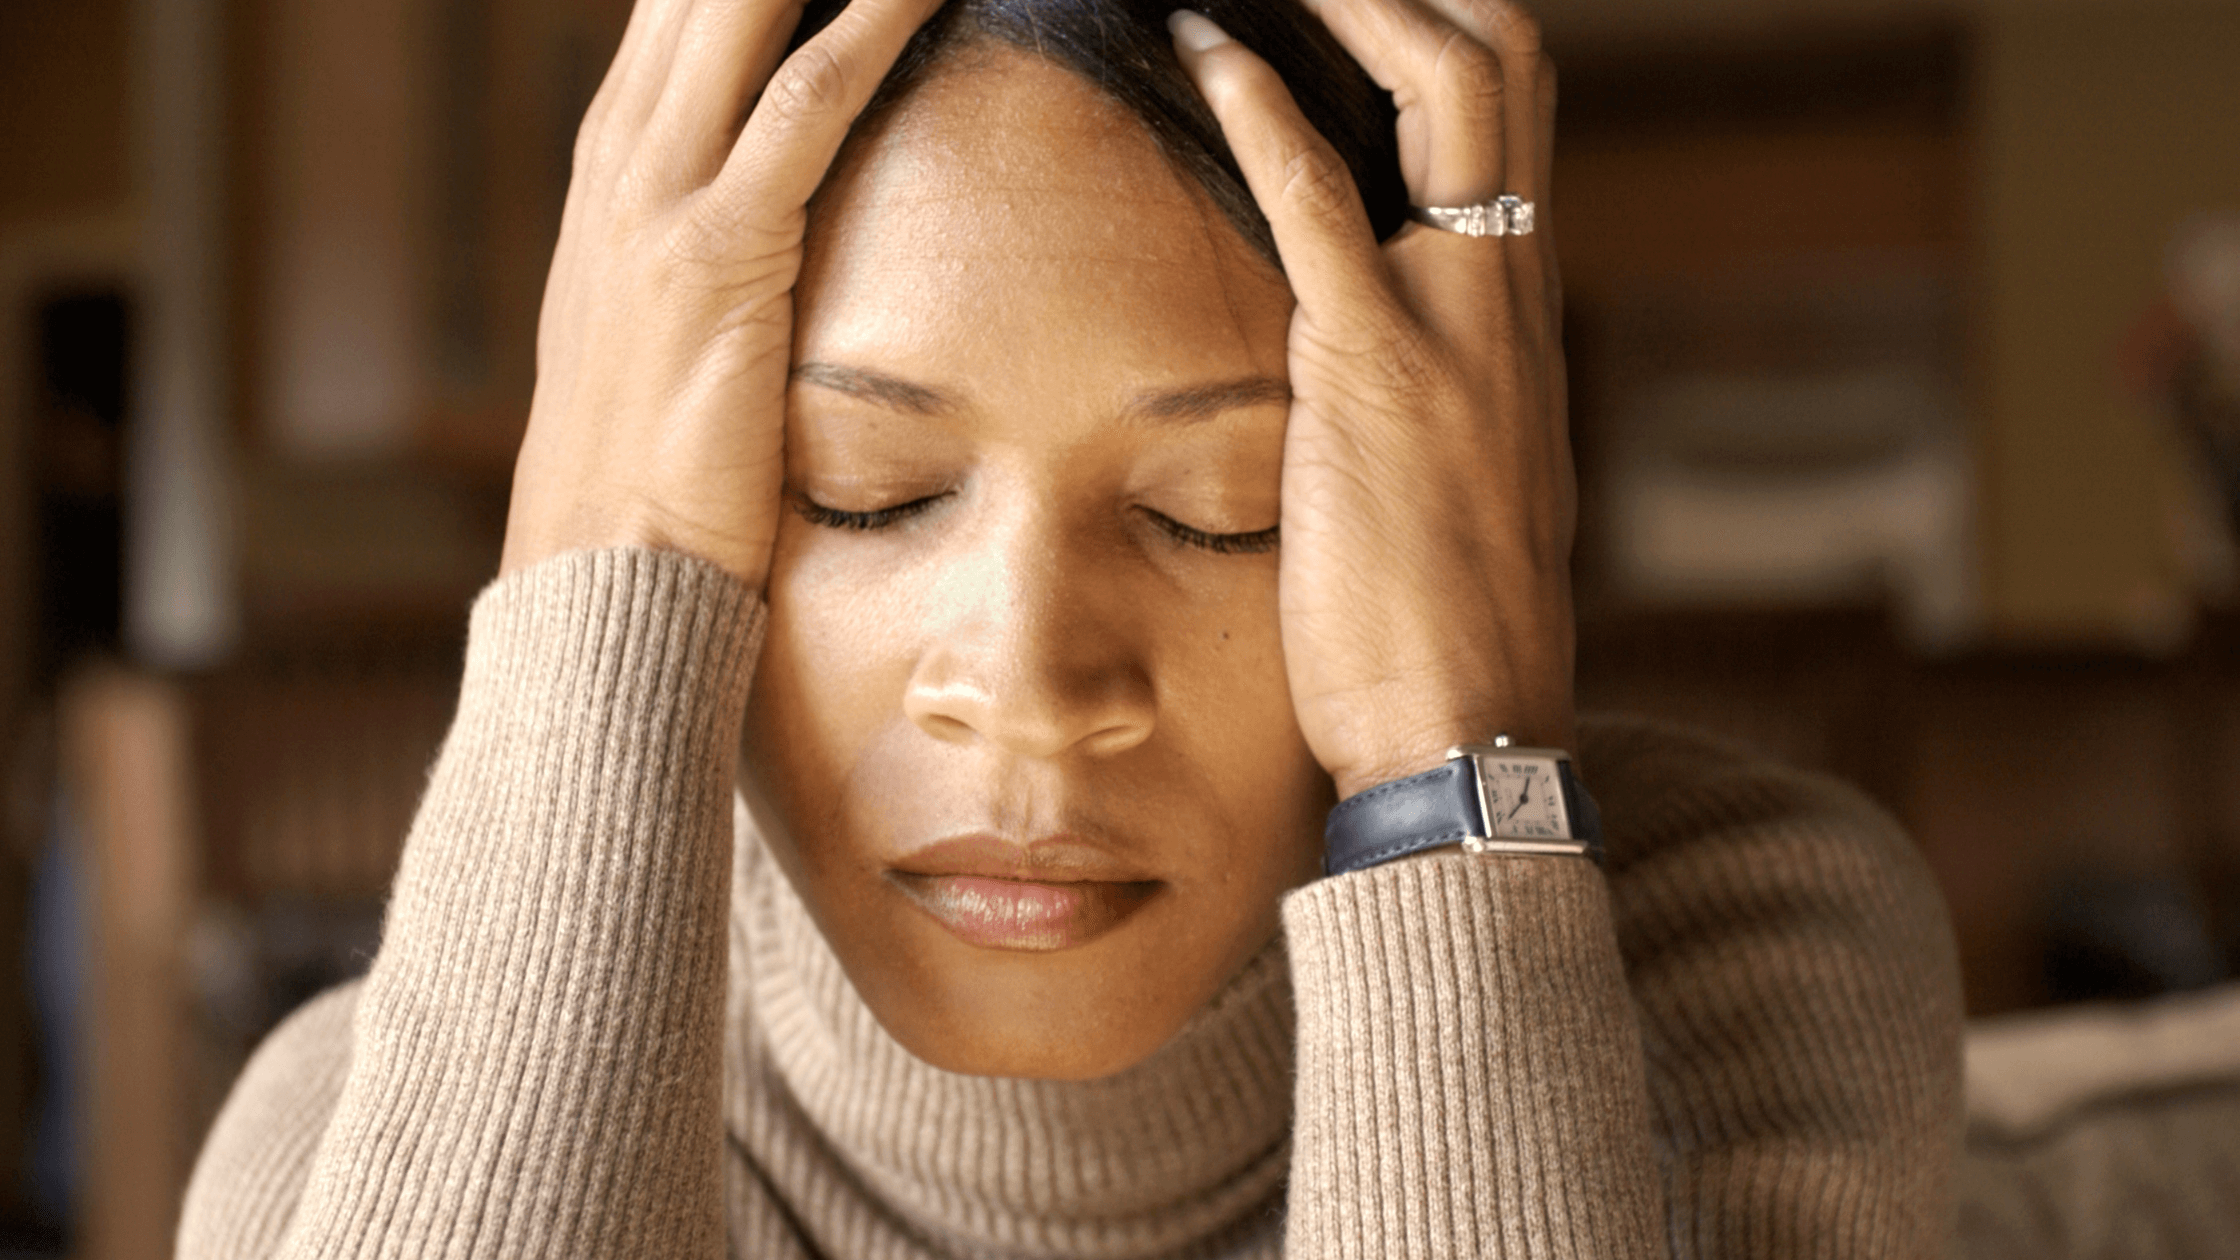 How to Manage Stress During COVID-19